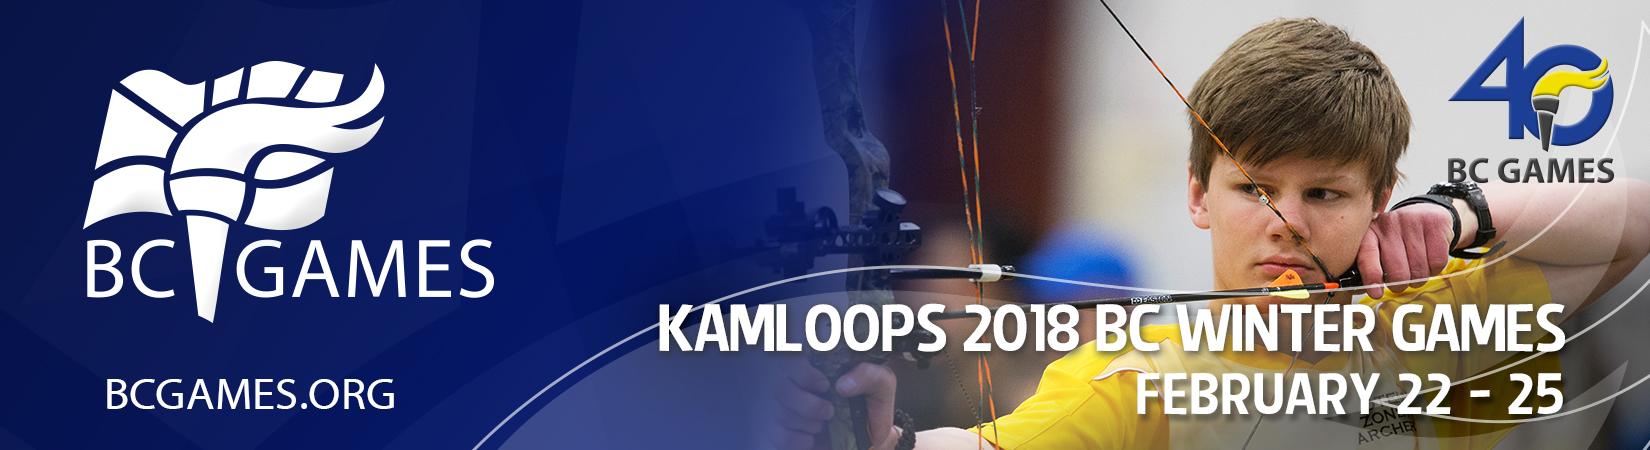 40 BC Games, Kamloops 2018 BC Winter Games: February 22-25, BCGames.org